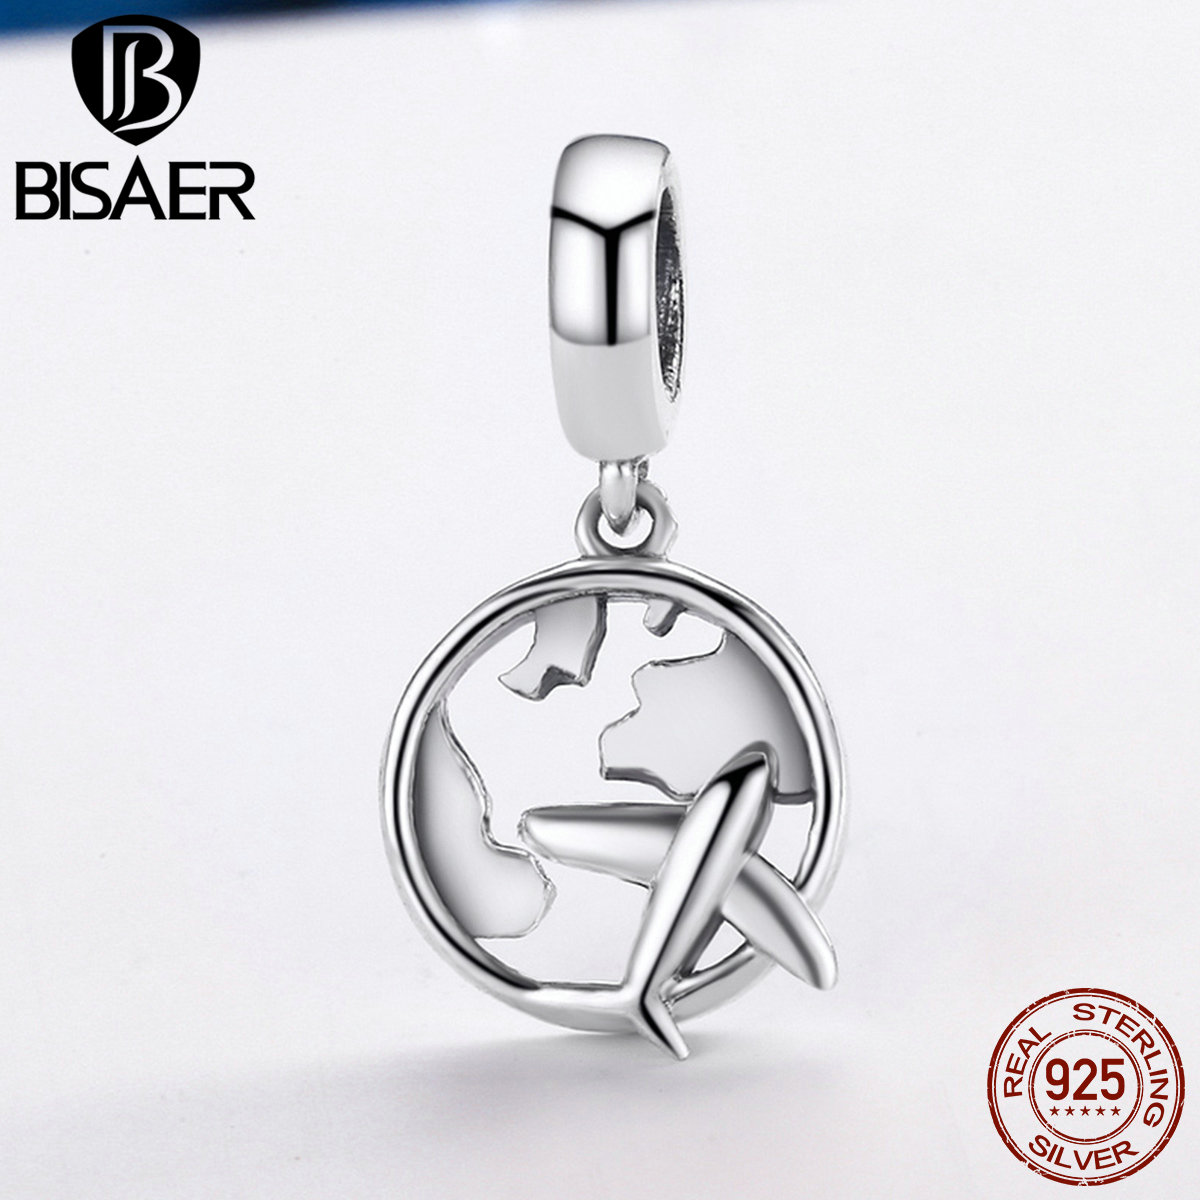 BISAER 925 Sterling Silver Traveling Dream Map & Plane Dangle Beads Fit Original PAN Charms Bracelet Silver 925 Jewelry Gift